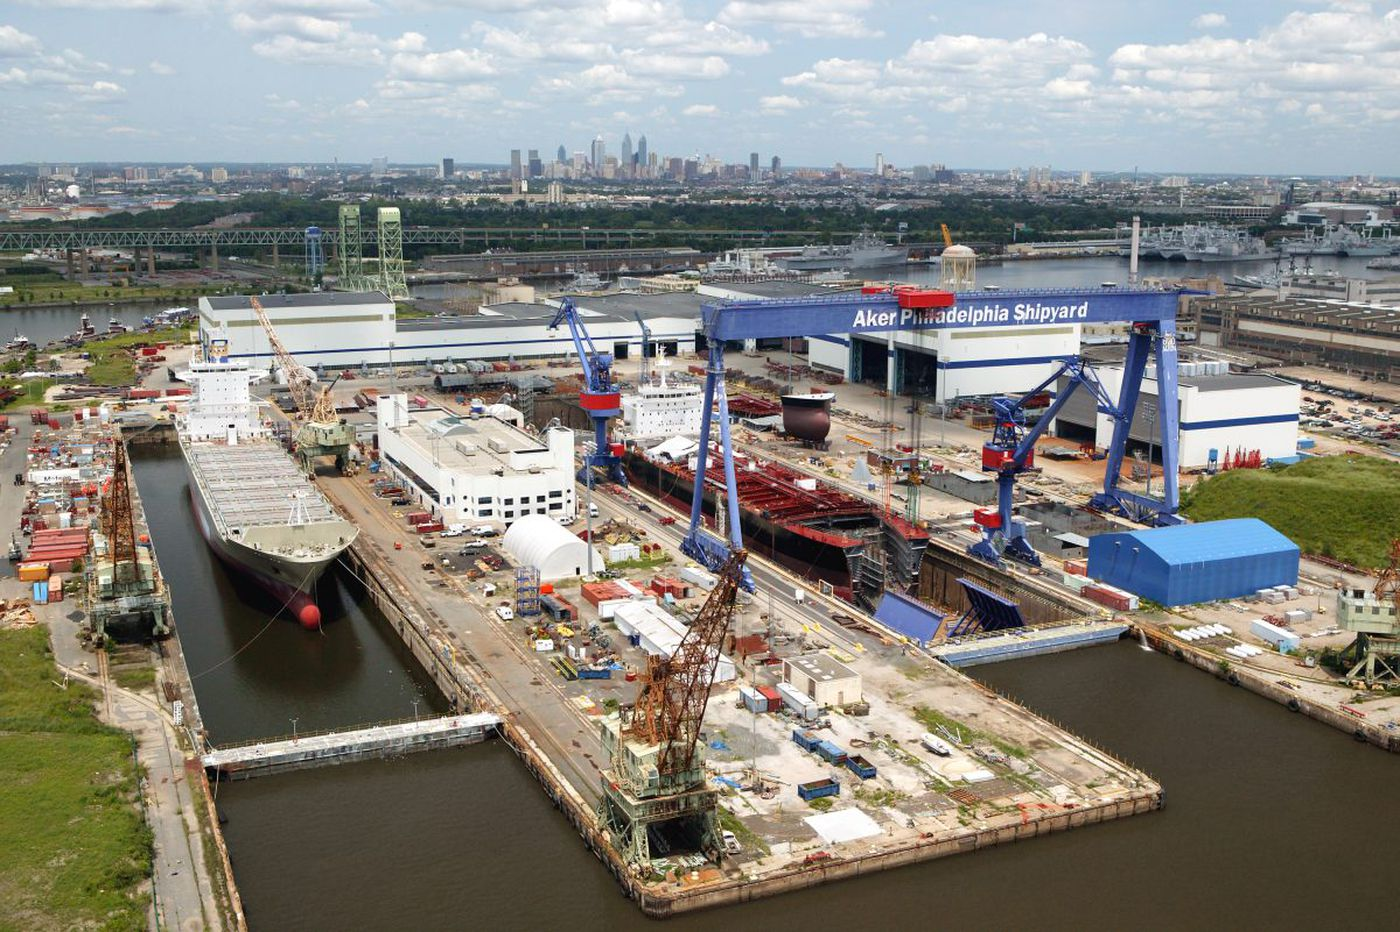 It's official: Philly Shipyard targets 275 for layoffs